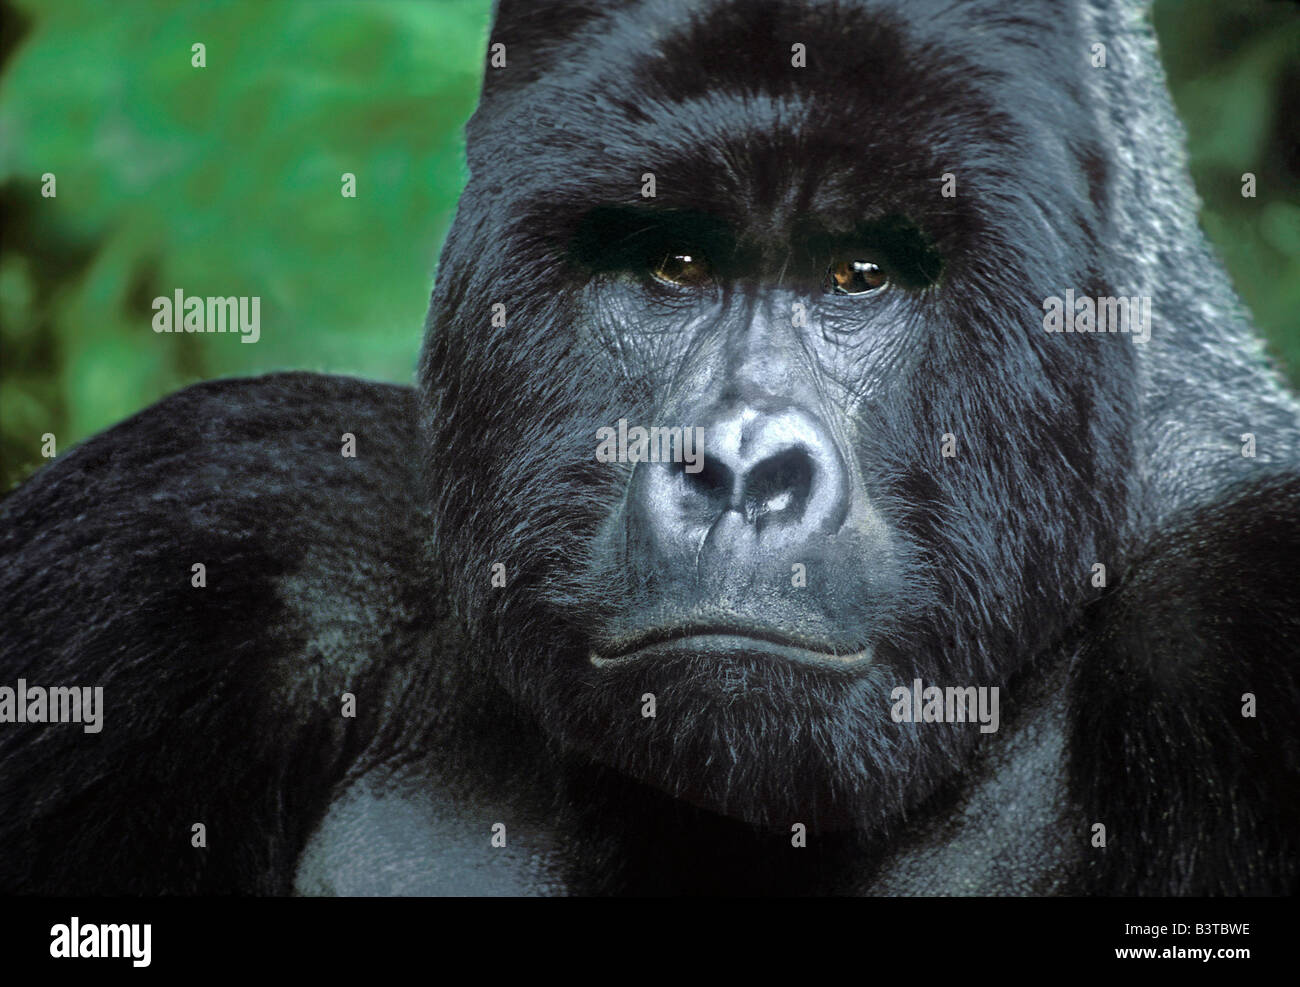 Africa, Zaire, Virungas National Park. Portrait of wild silverback mountain gorilla. - Stock Image